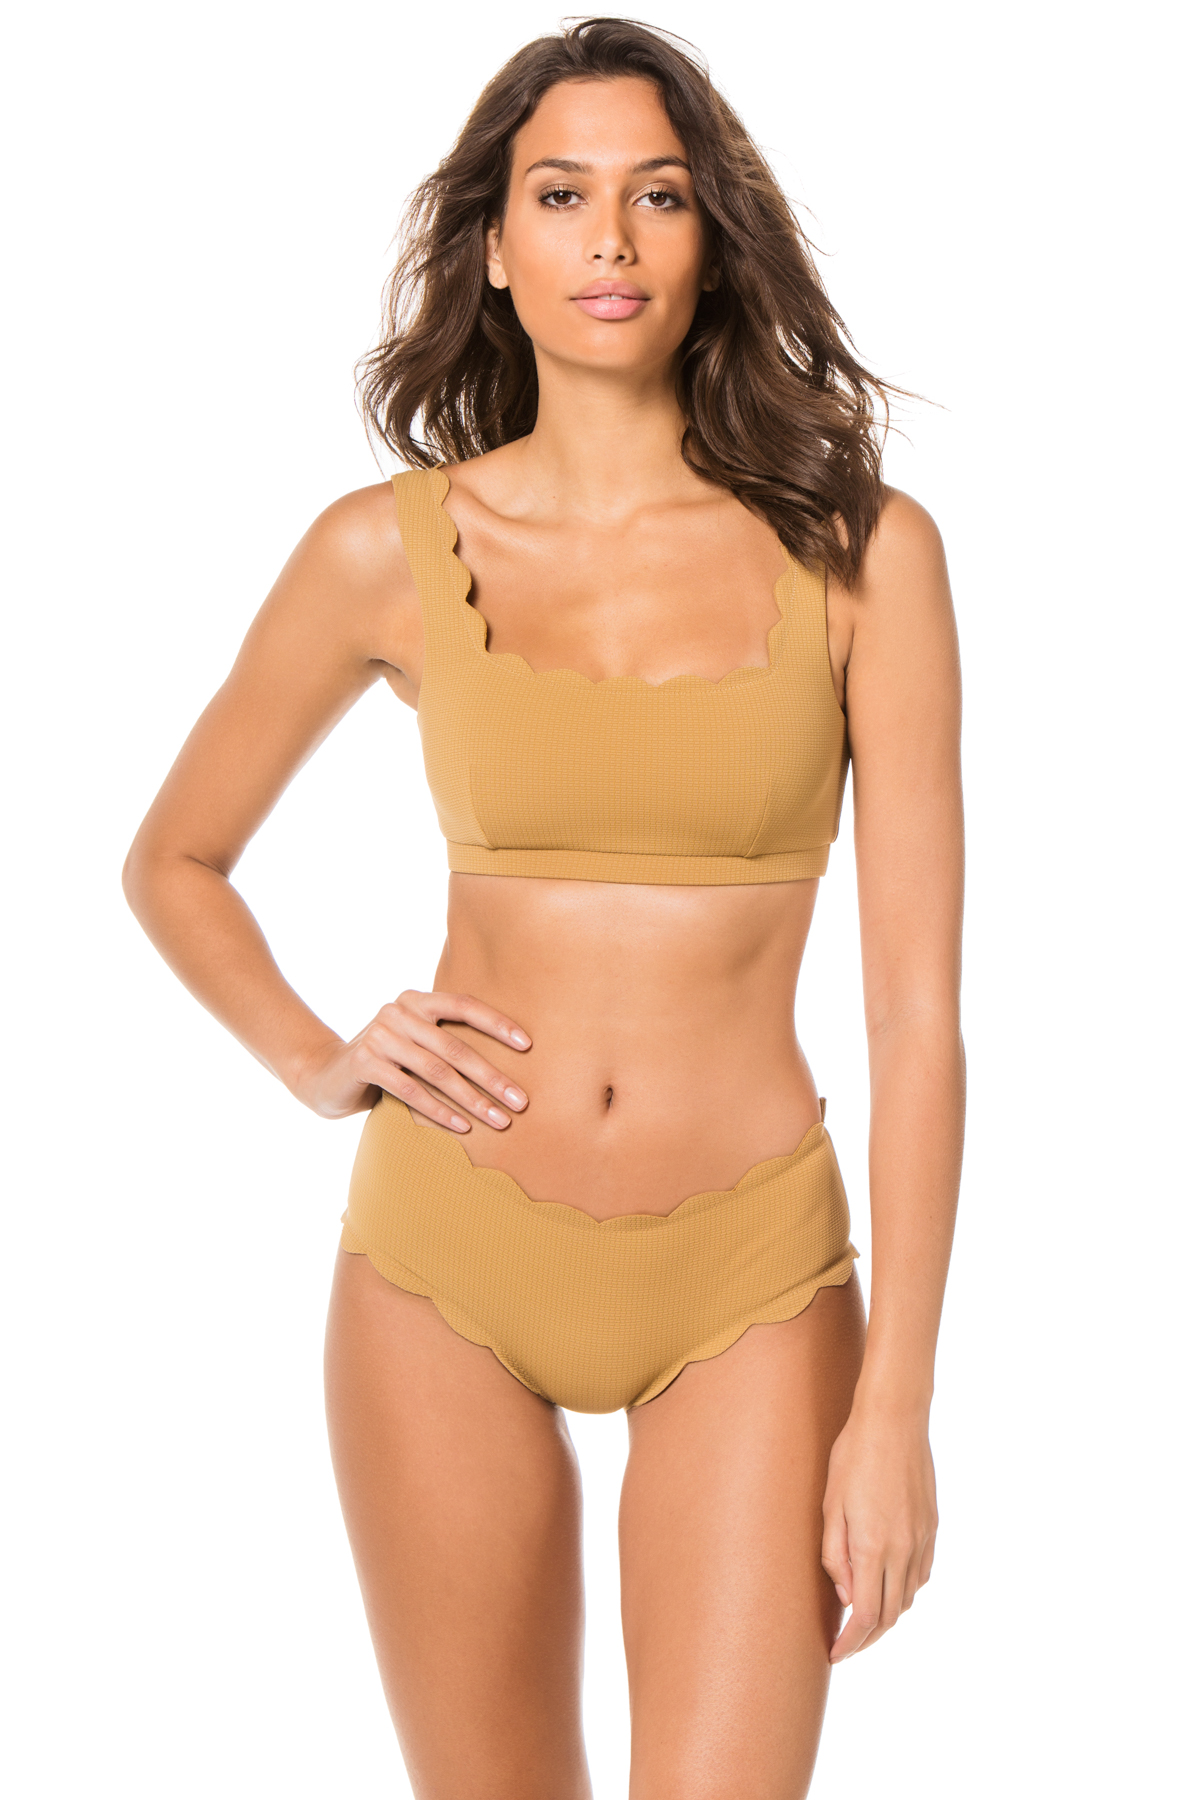 Palm Springs Scalloped Bralette Bikini Top - Canyon 1